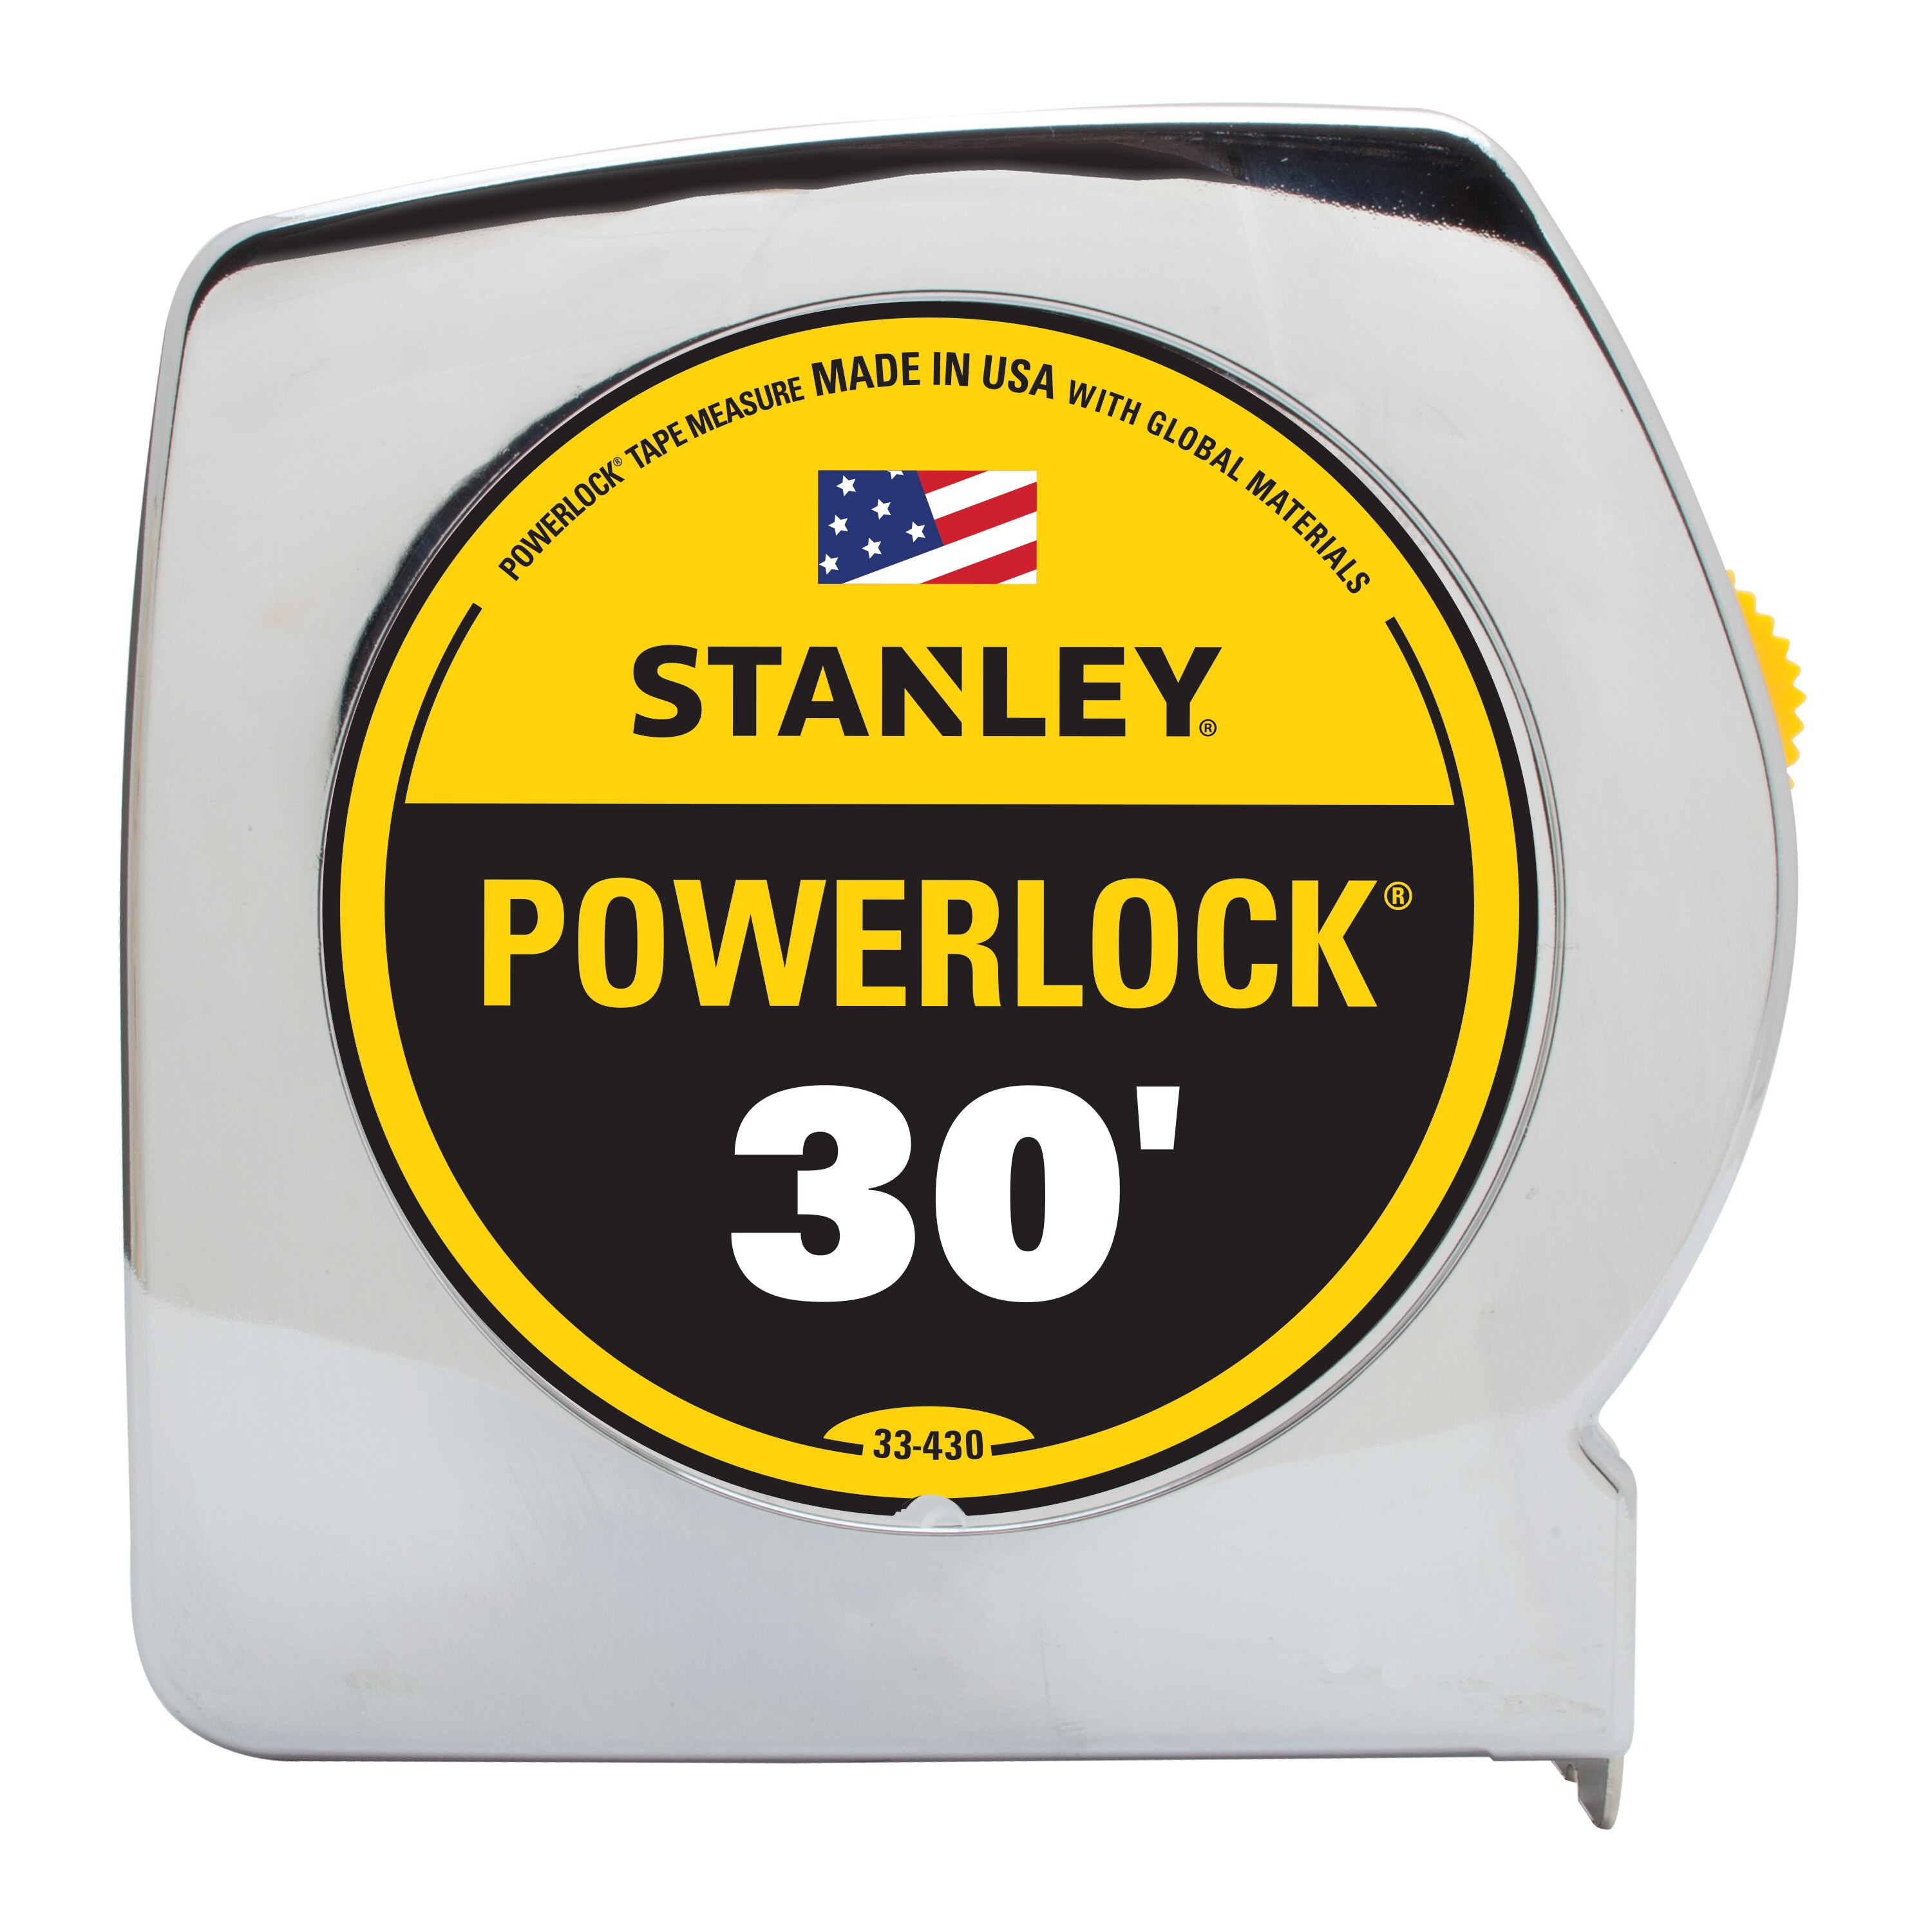 Stanley Tools - 30 ftPowerLock Tape Measure with BladeArmor - 33-430